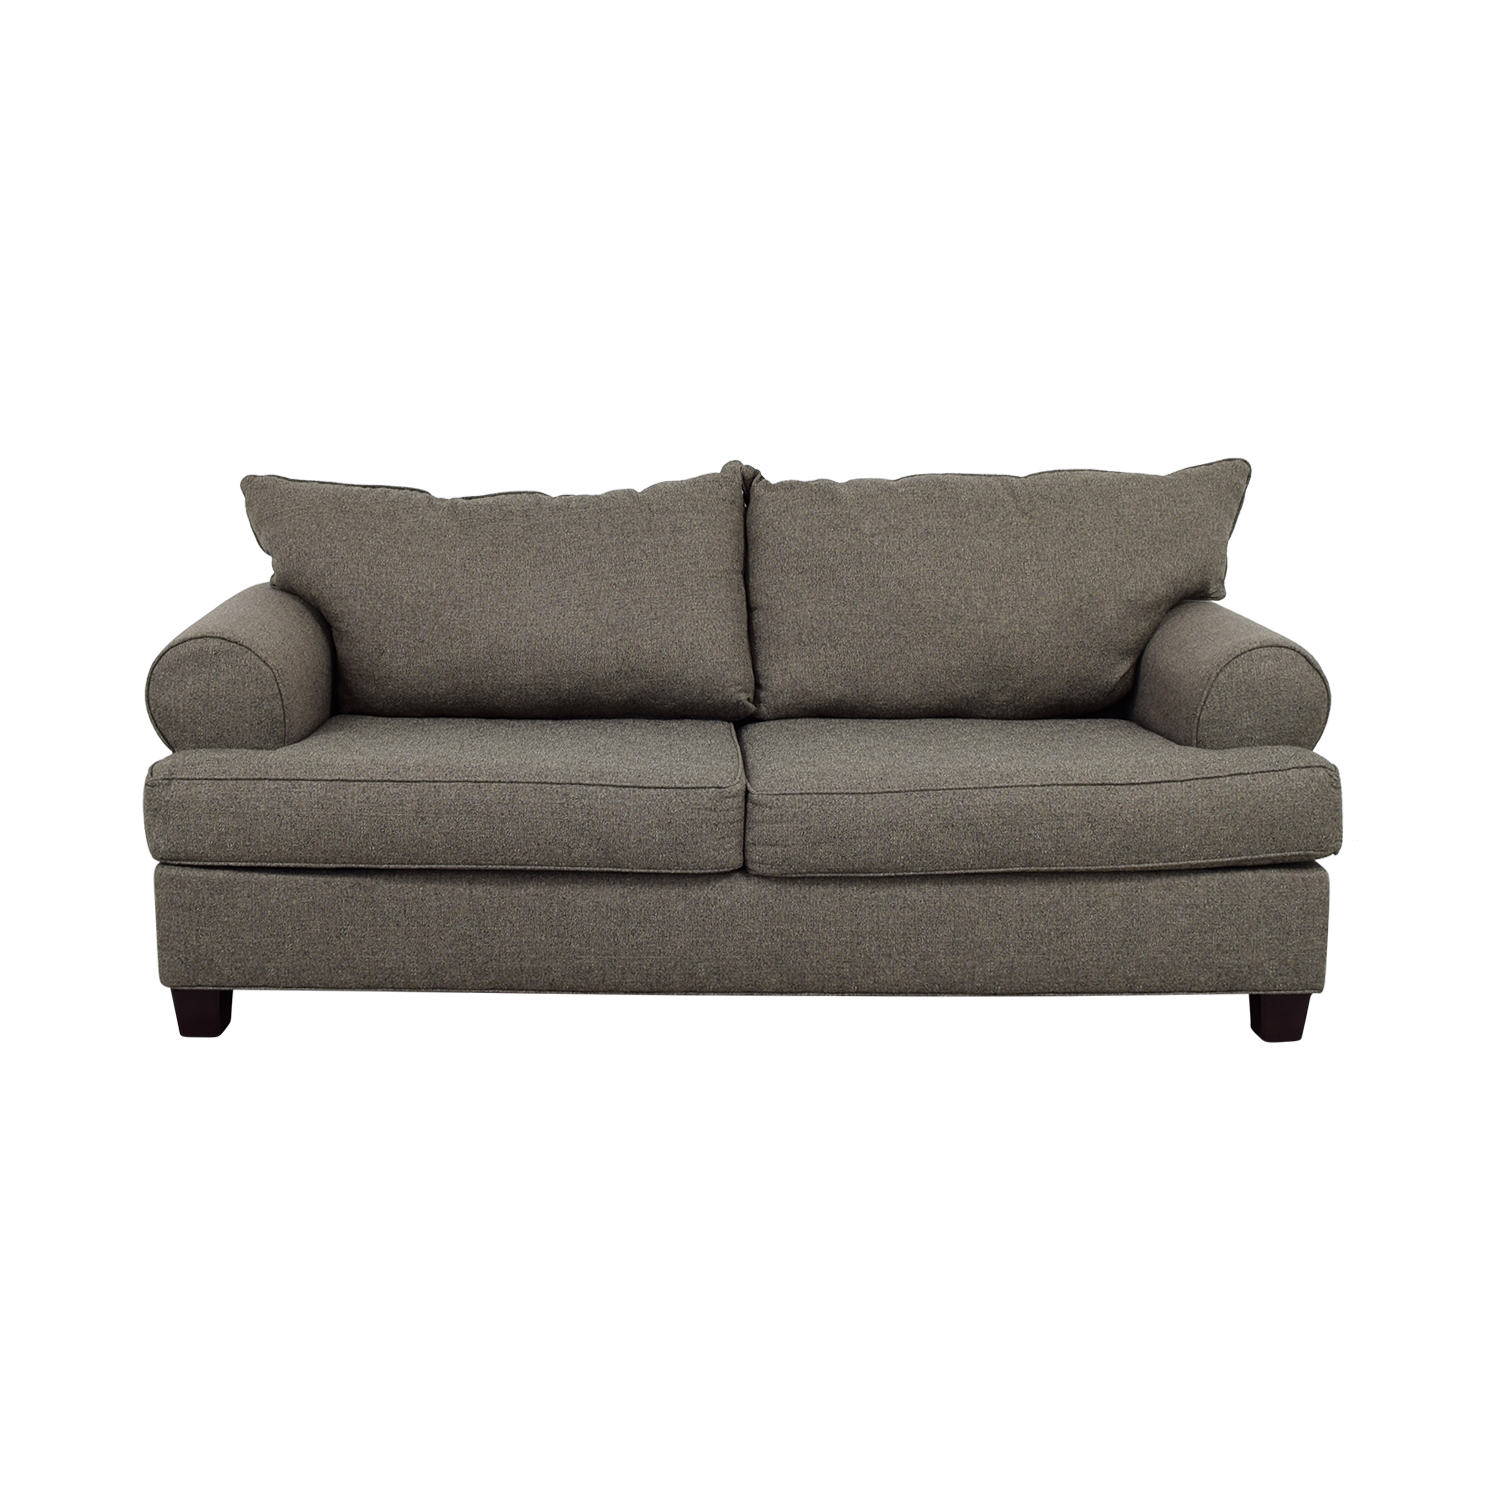 Bobs Furniture Bobs Furniture Tweed Sofa price